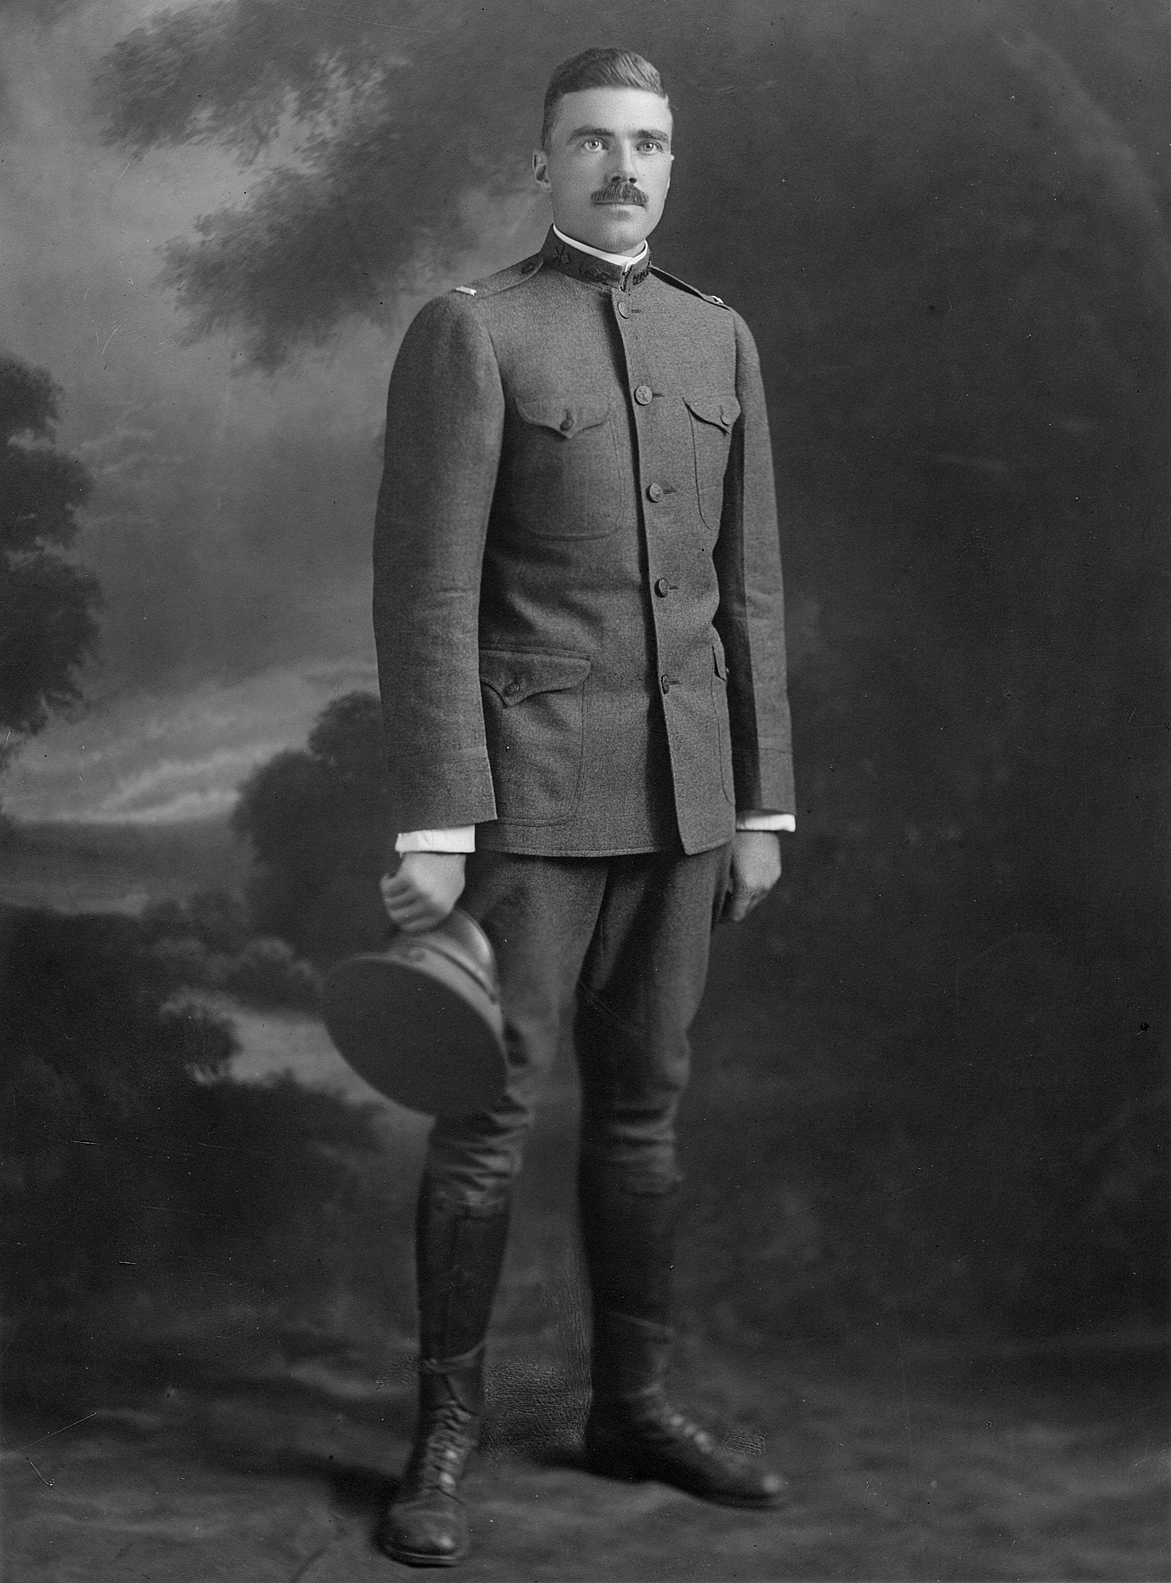 (above) Frank F. Bell II as First Lieutenant, Signal Reserve Corps, Aviation Section when called to active duty July 1917